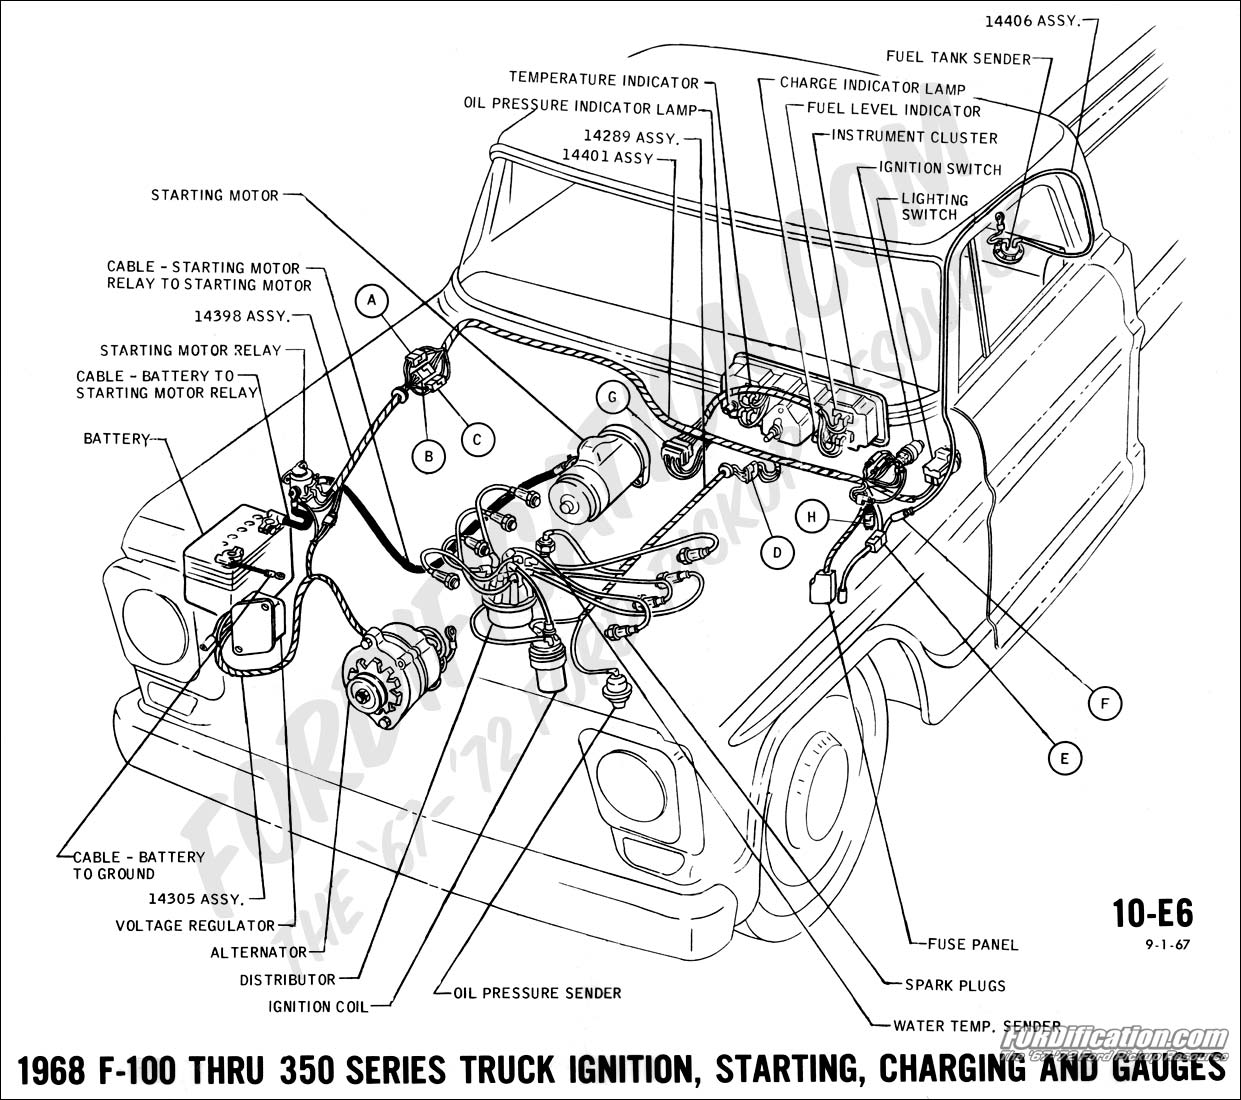 1968 F-100 thru F-350 ignition, starting, charging and gauges ...